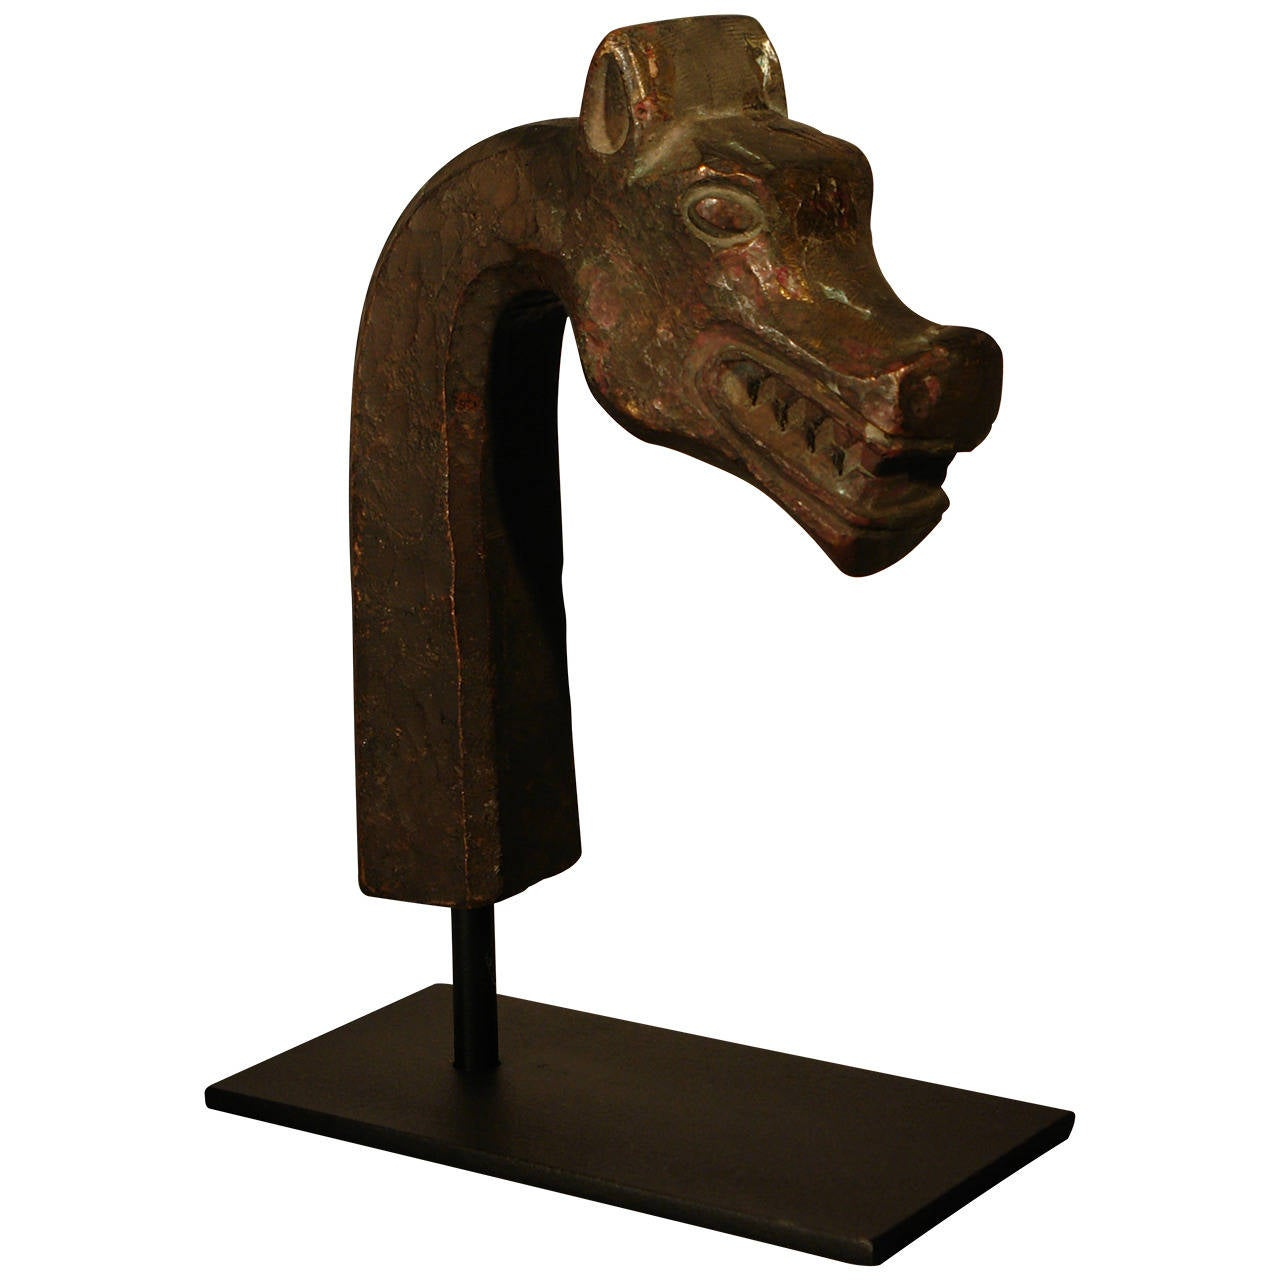 French Art Deco Bronze Mythological Beast Head Sculpture, circa 1930